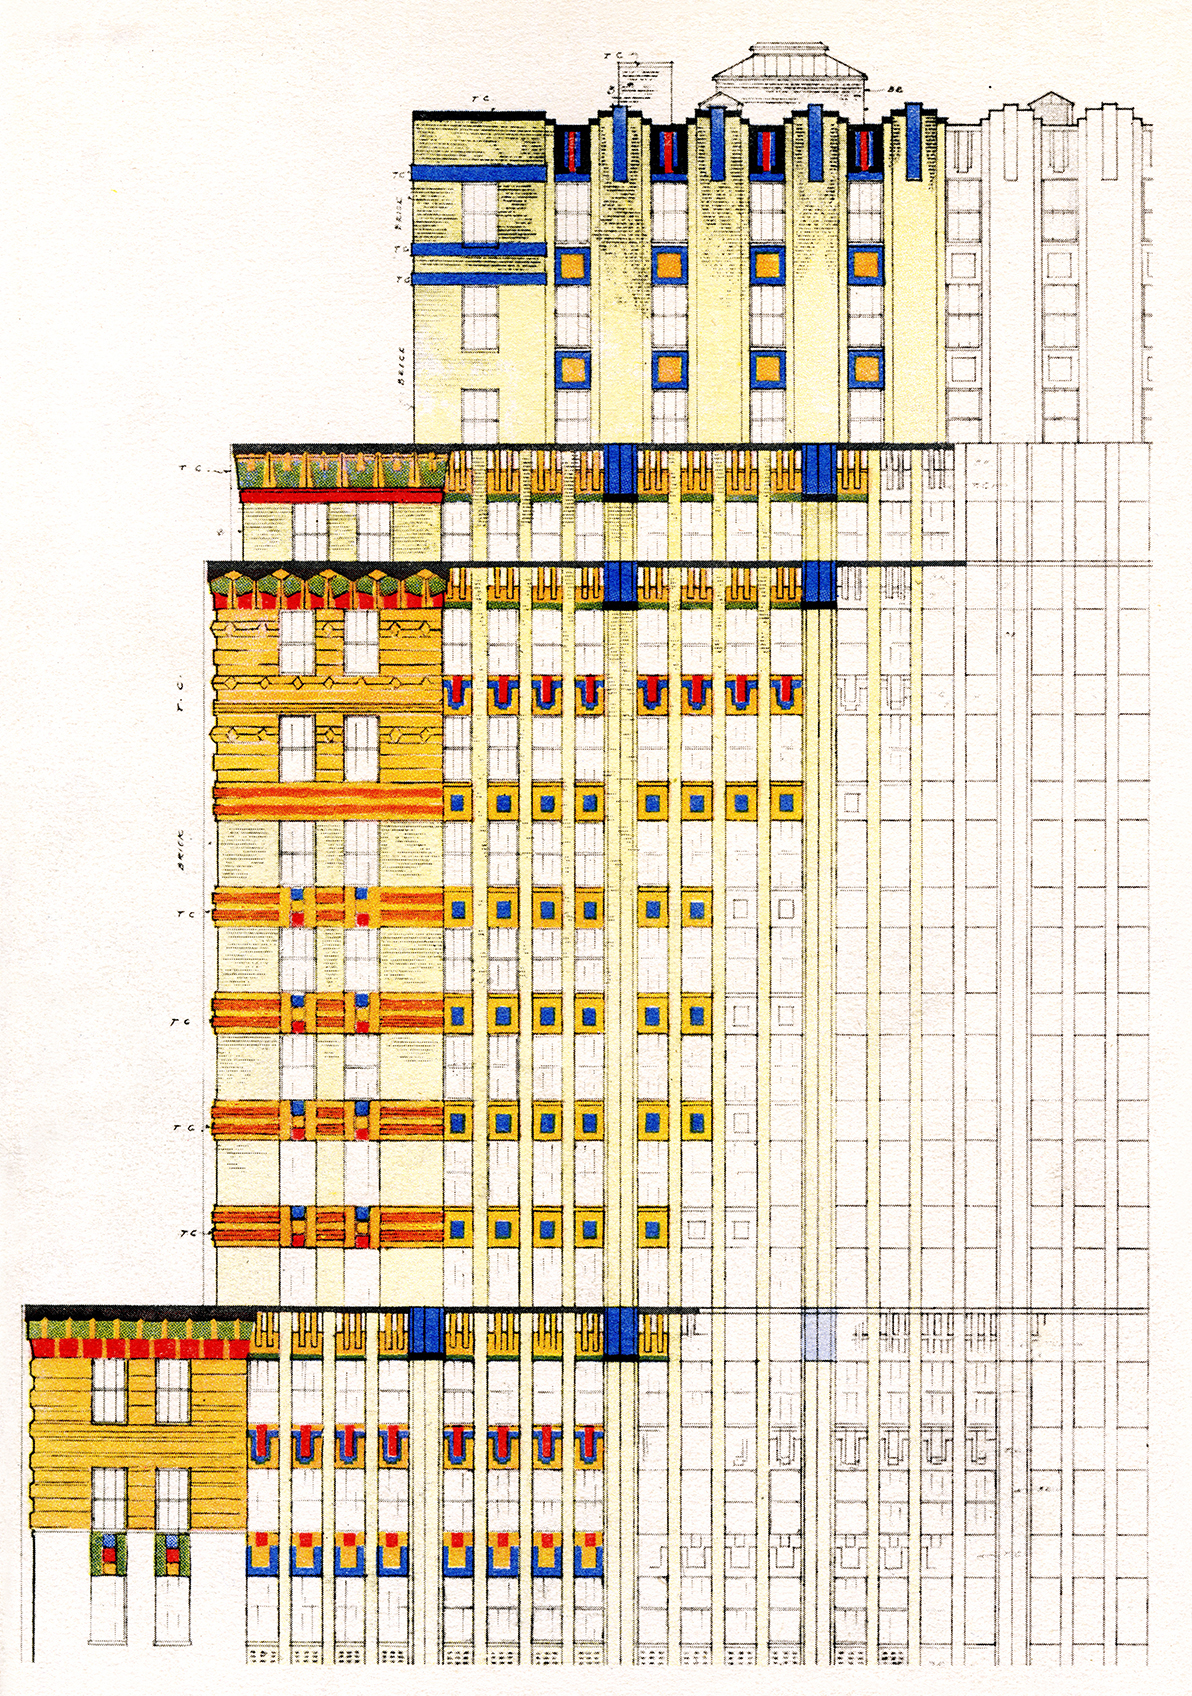 """<p><span><span><span><span>This color study was put together by ceramicist and color consultant Leon V. Solon, who knew Kahn from the Architectural League of New York, where both were quite active. It features in Solon's essay """"The Park Avenue Building, New York City: The Evolution of a Style,"""" <em>The Architectural Record </em>v. 63, n. 4 (April 1928).</span></span></span></span></p>"""